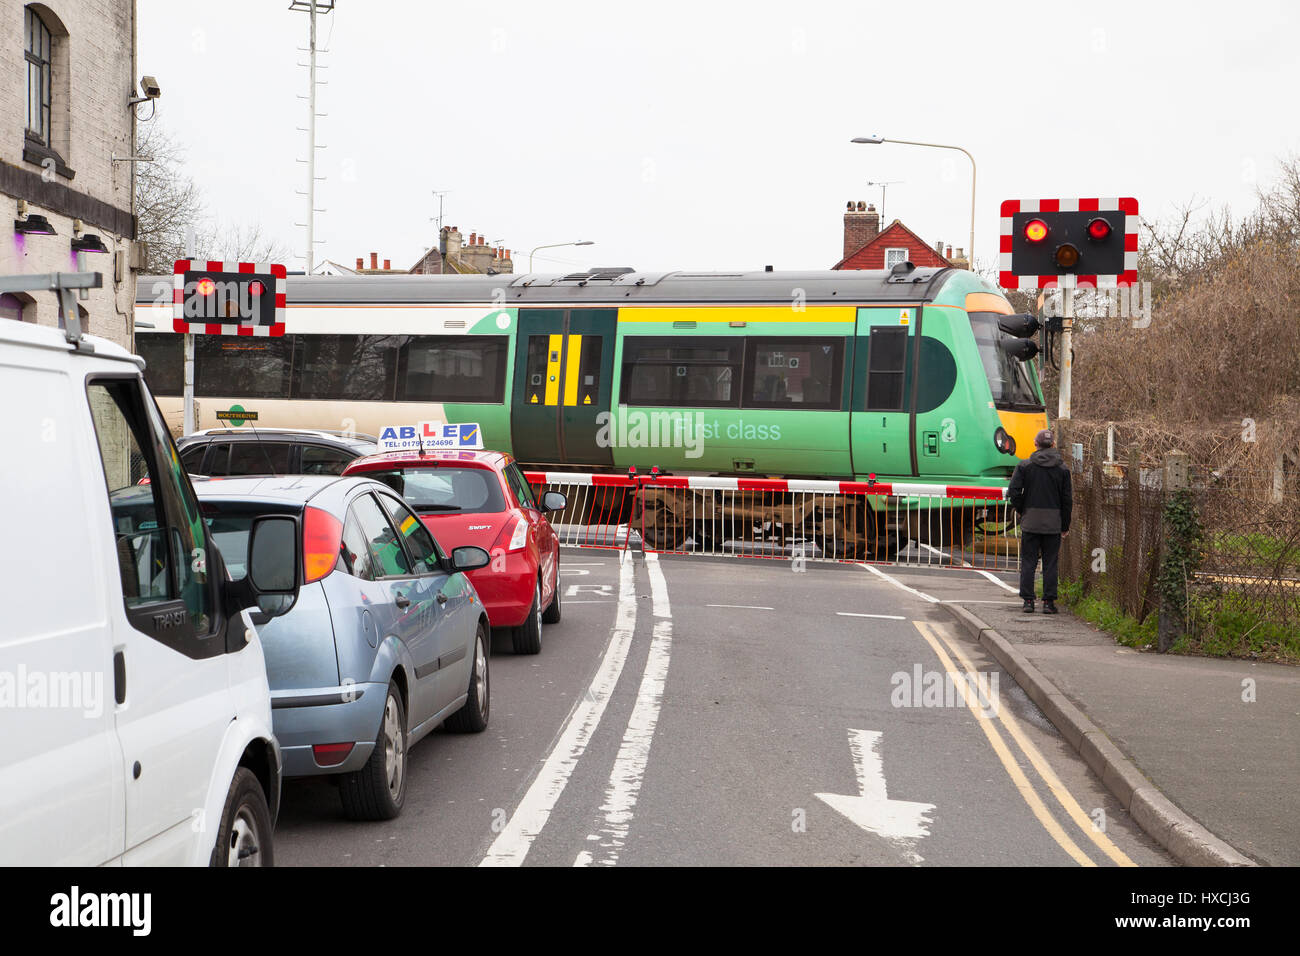 Railway barriers closed southern railway train crossing cars and pedestrian waiting Rye East Sussex - Stock Image